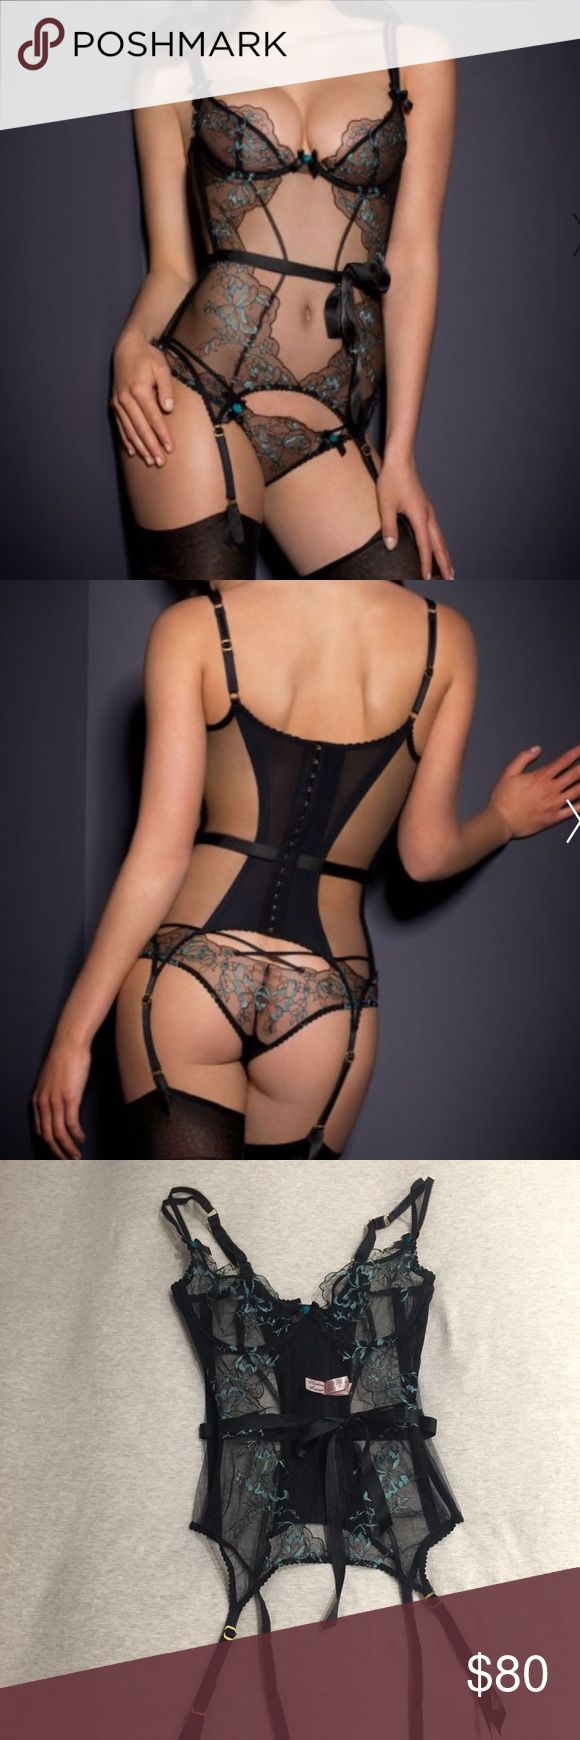 Agent Provocateur Callie Basque Lingerie Corset sexy lingerie that can easily pair with black lace thong! You can see nor sizing guide on their website. Agent Provocateur Intimates & Sleepwear Shapewear